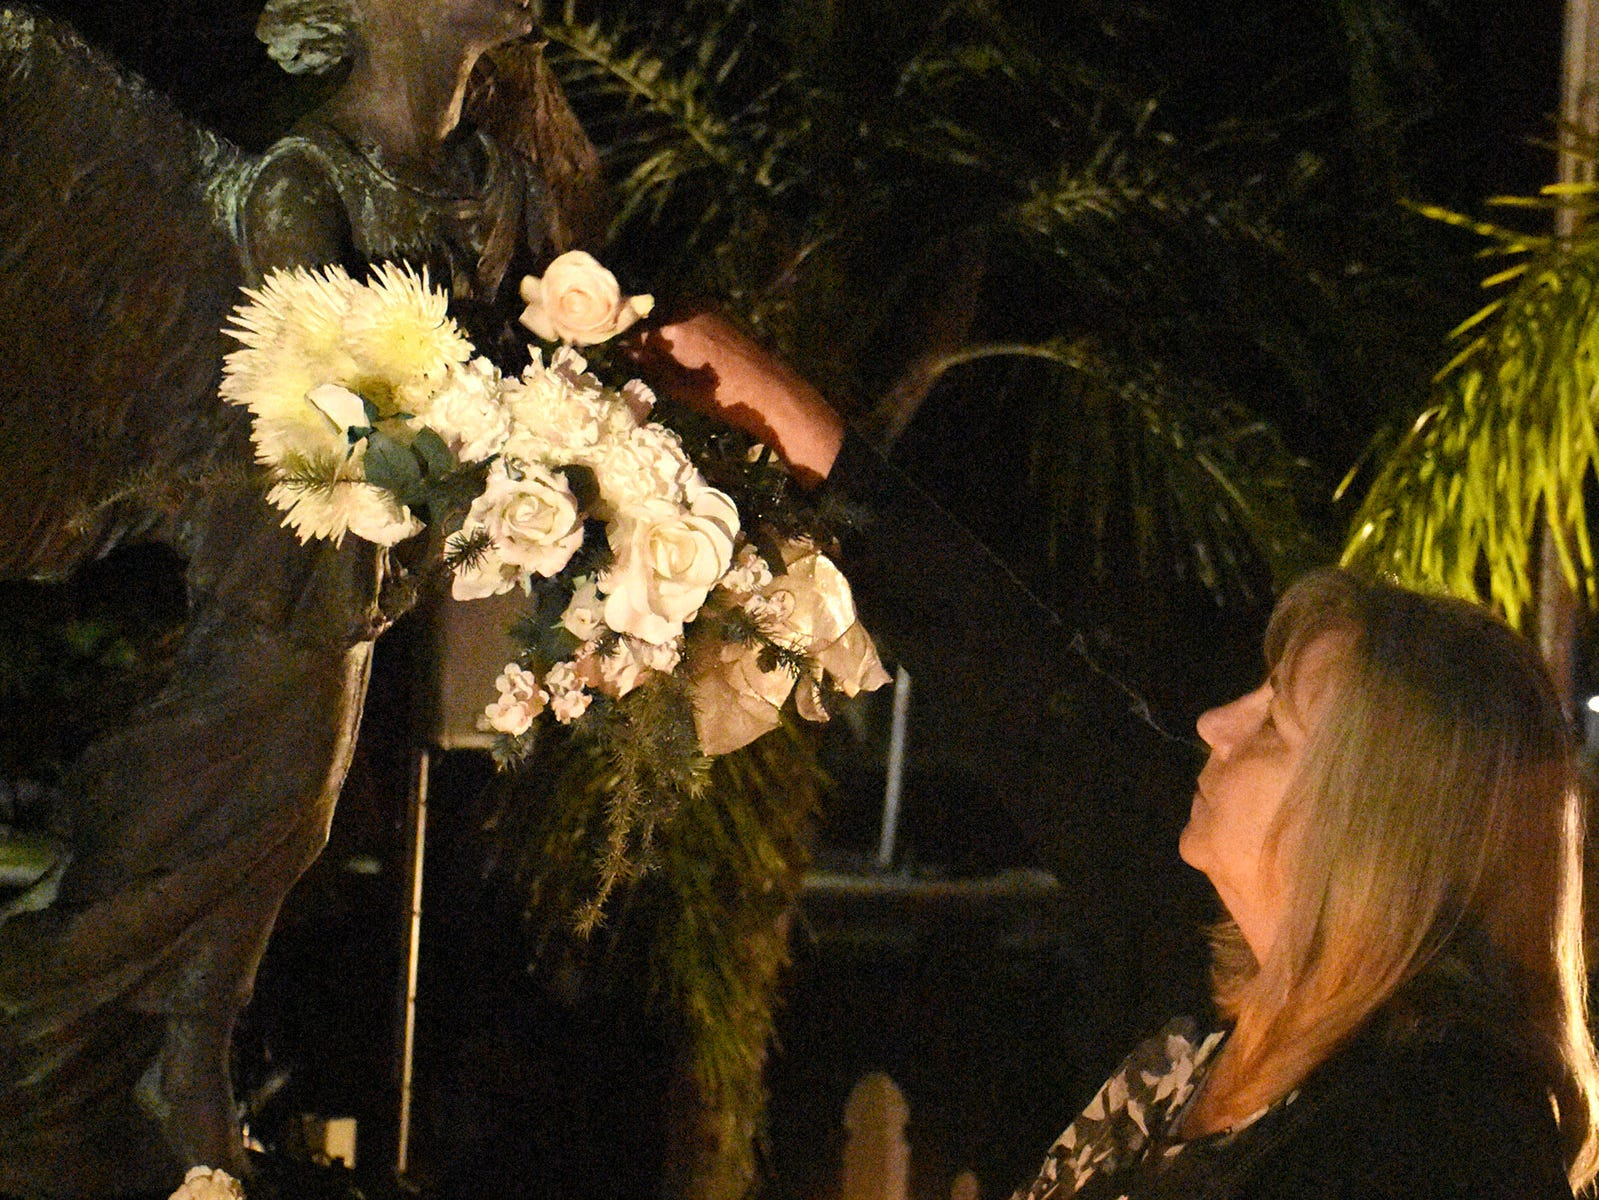 Families remember loved ones at Christmas Box Angel memorial service on Marco Island